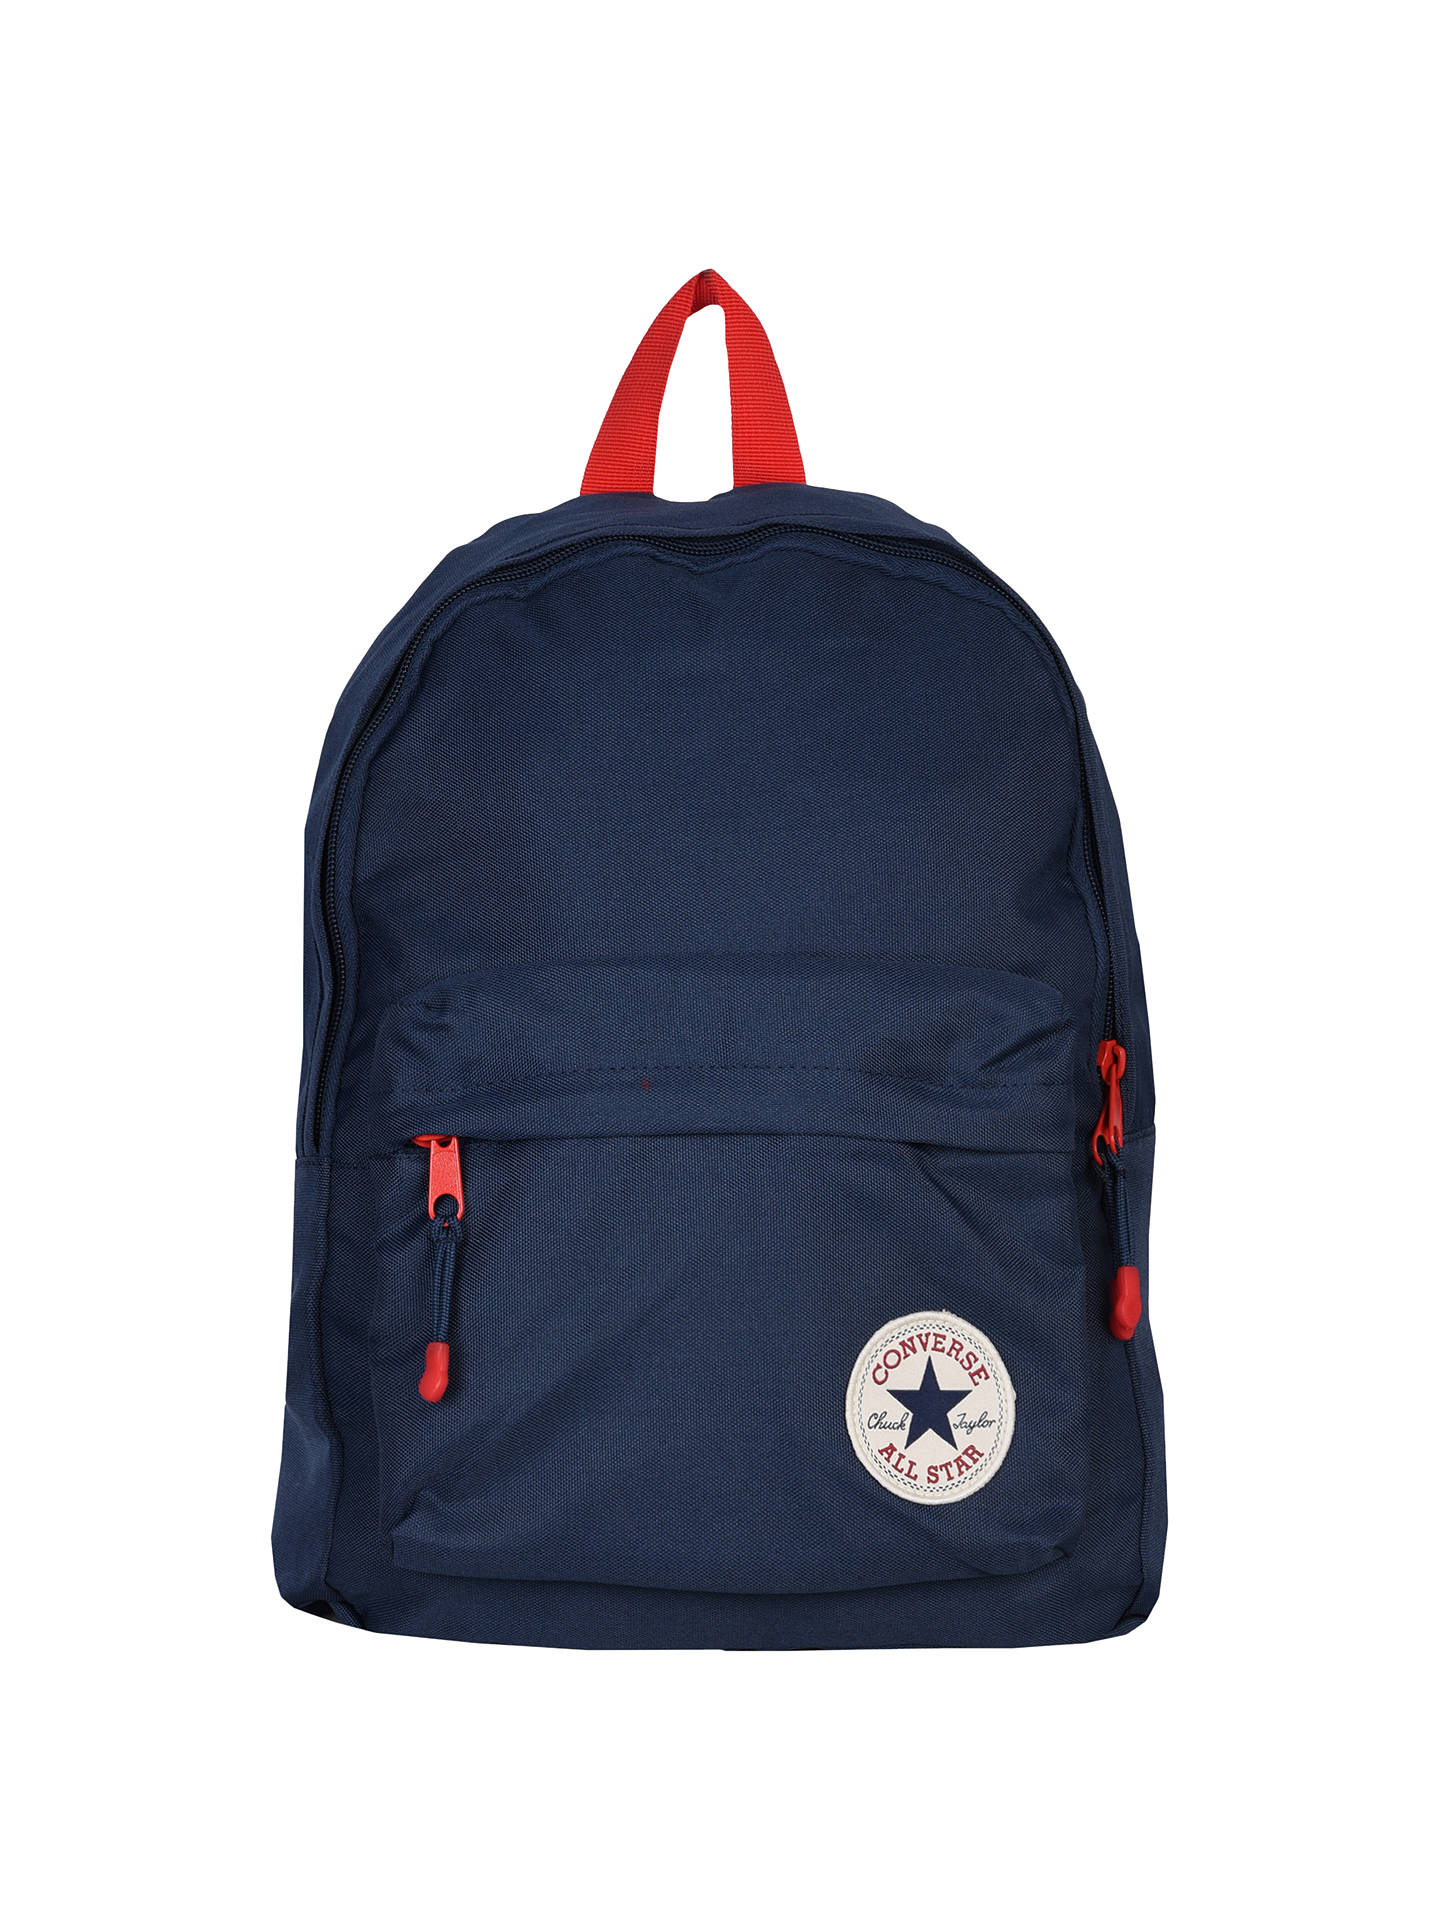 8f7c8691e475 Converse Children s Core Backpack at John Lewis   Partners